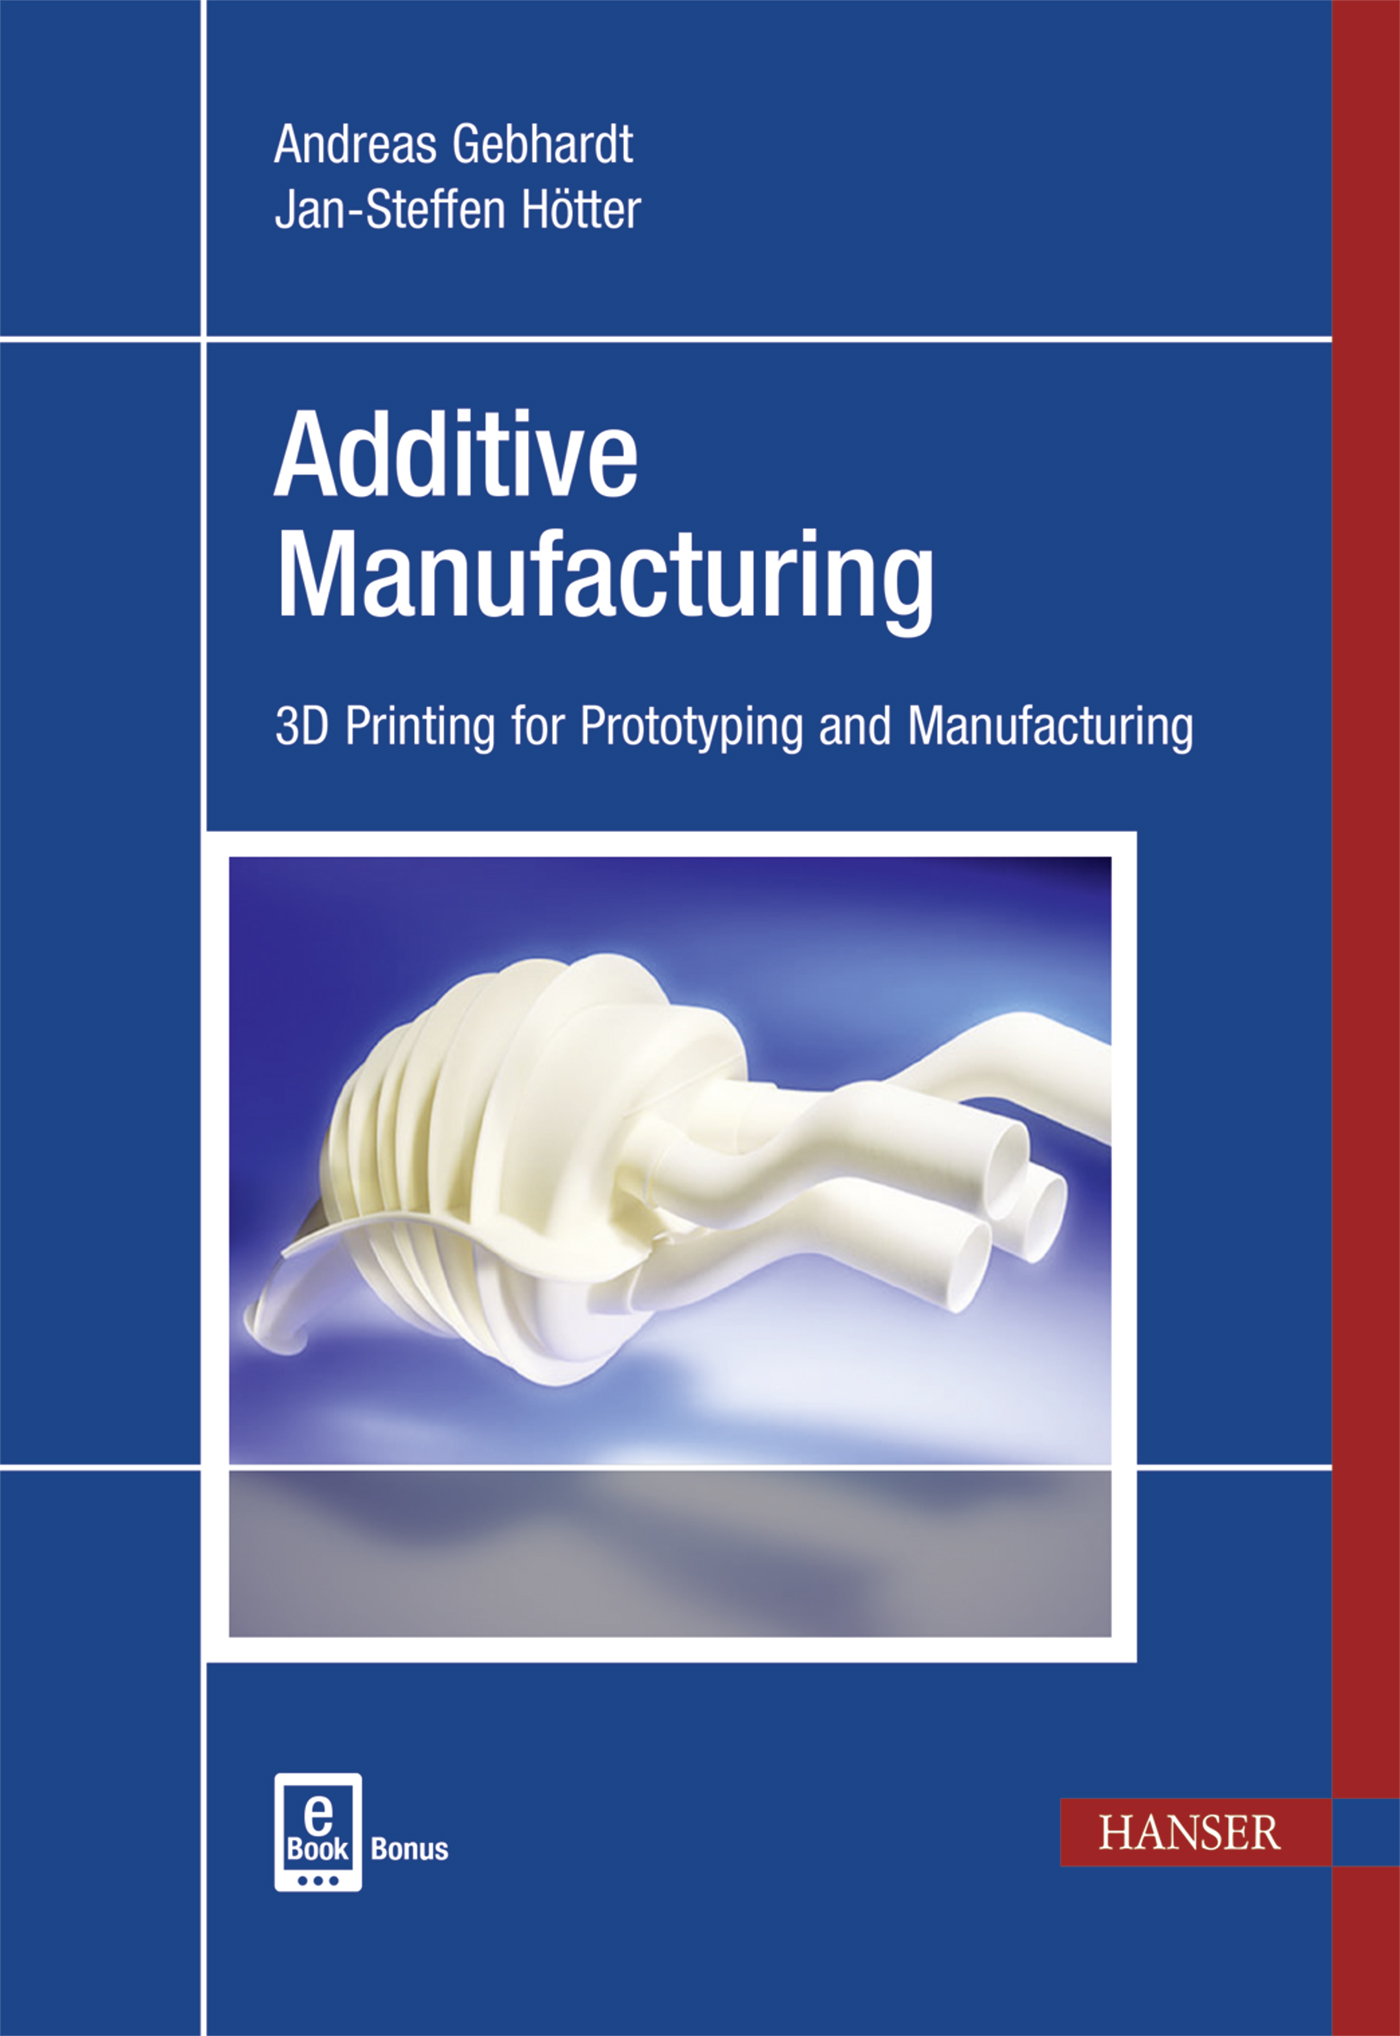 Gebhardt, Hötter, Additive Manufacturing, 978-1-56990-582-1